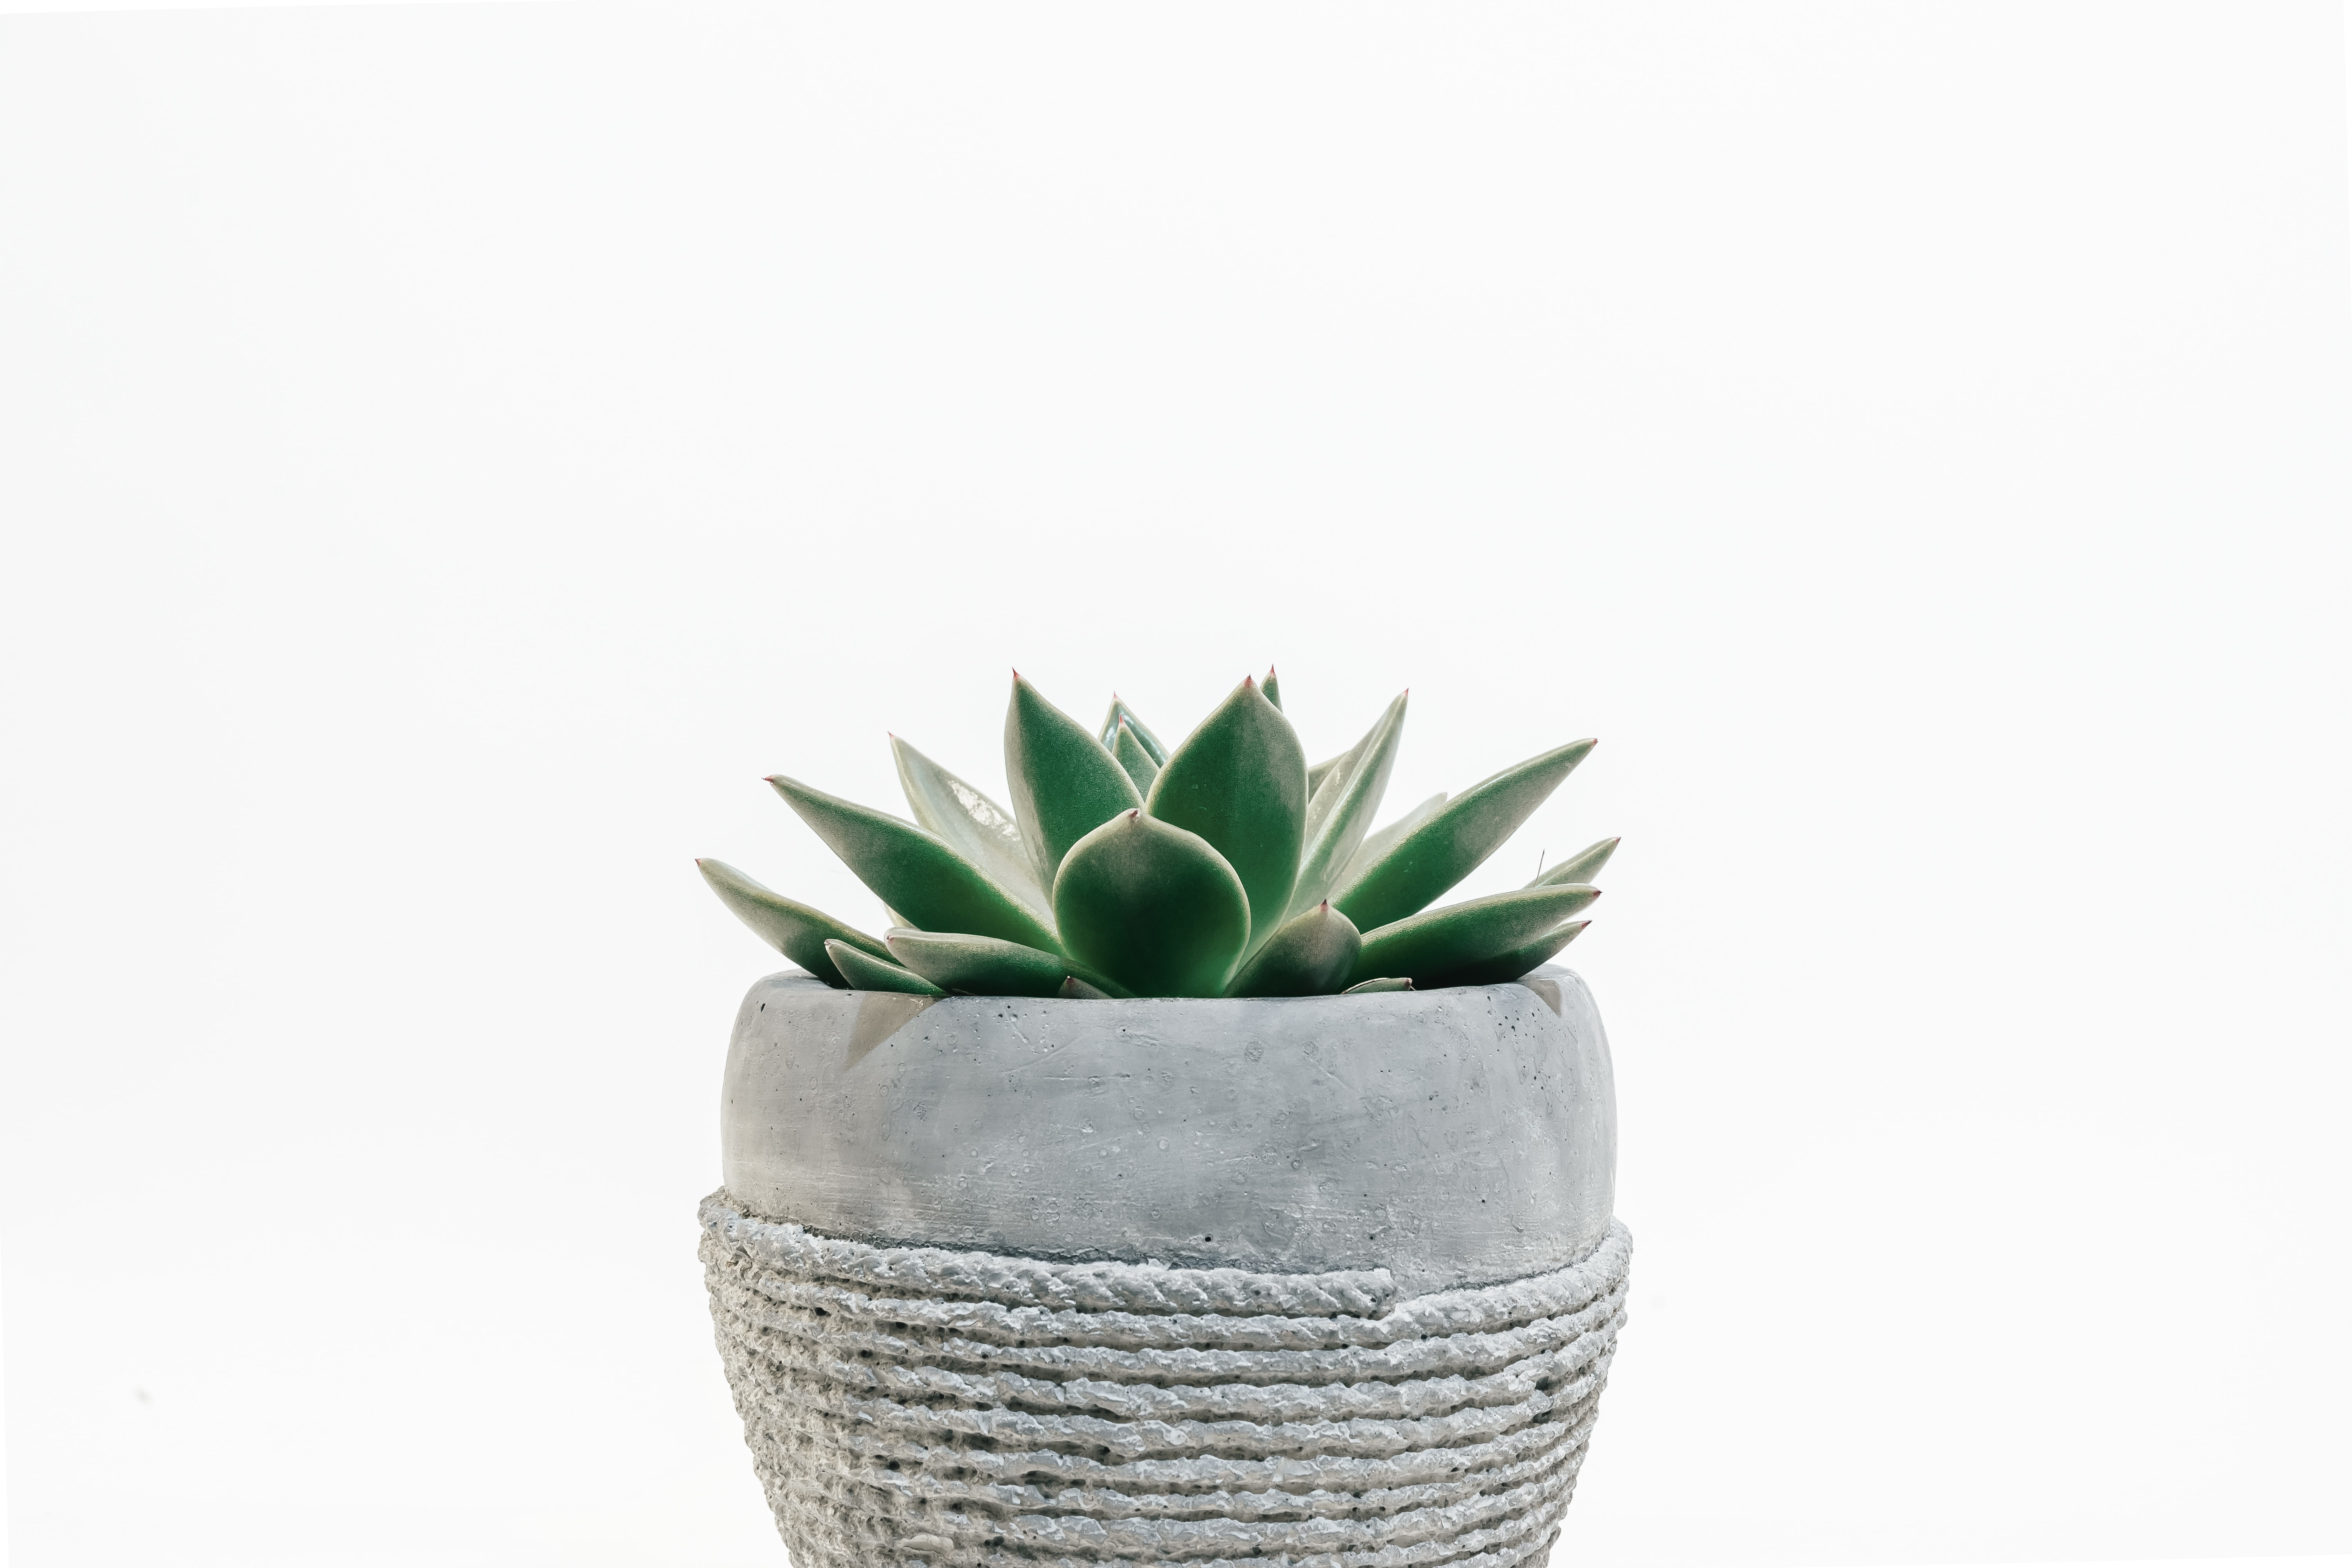 green succulent plant in gray pot